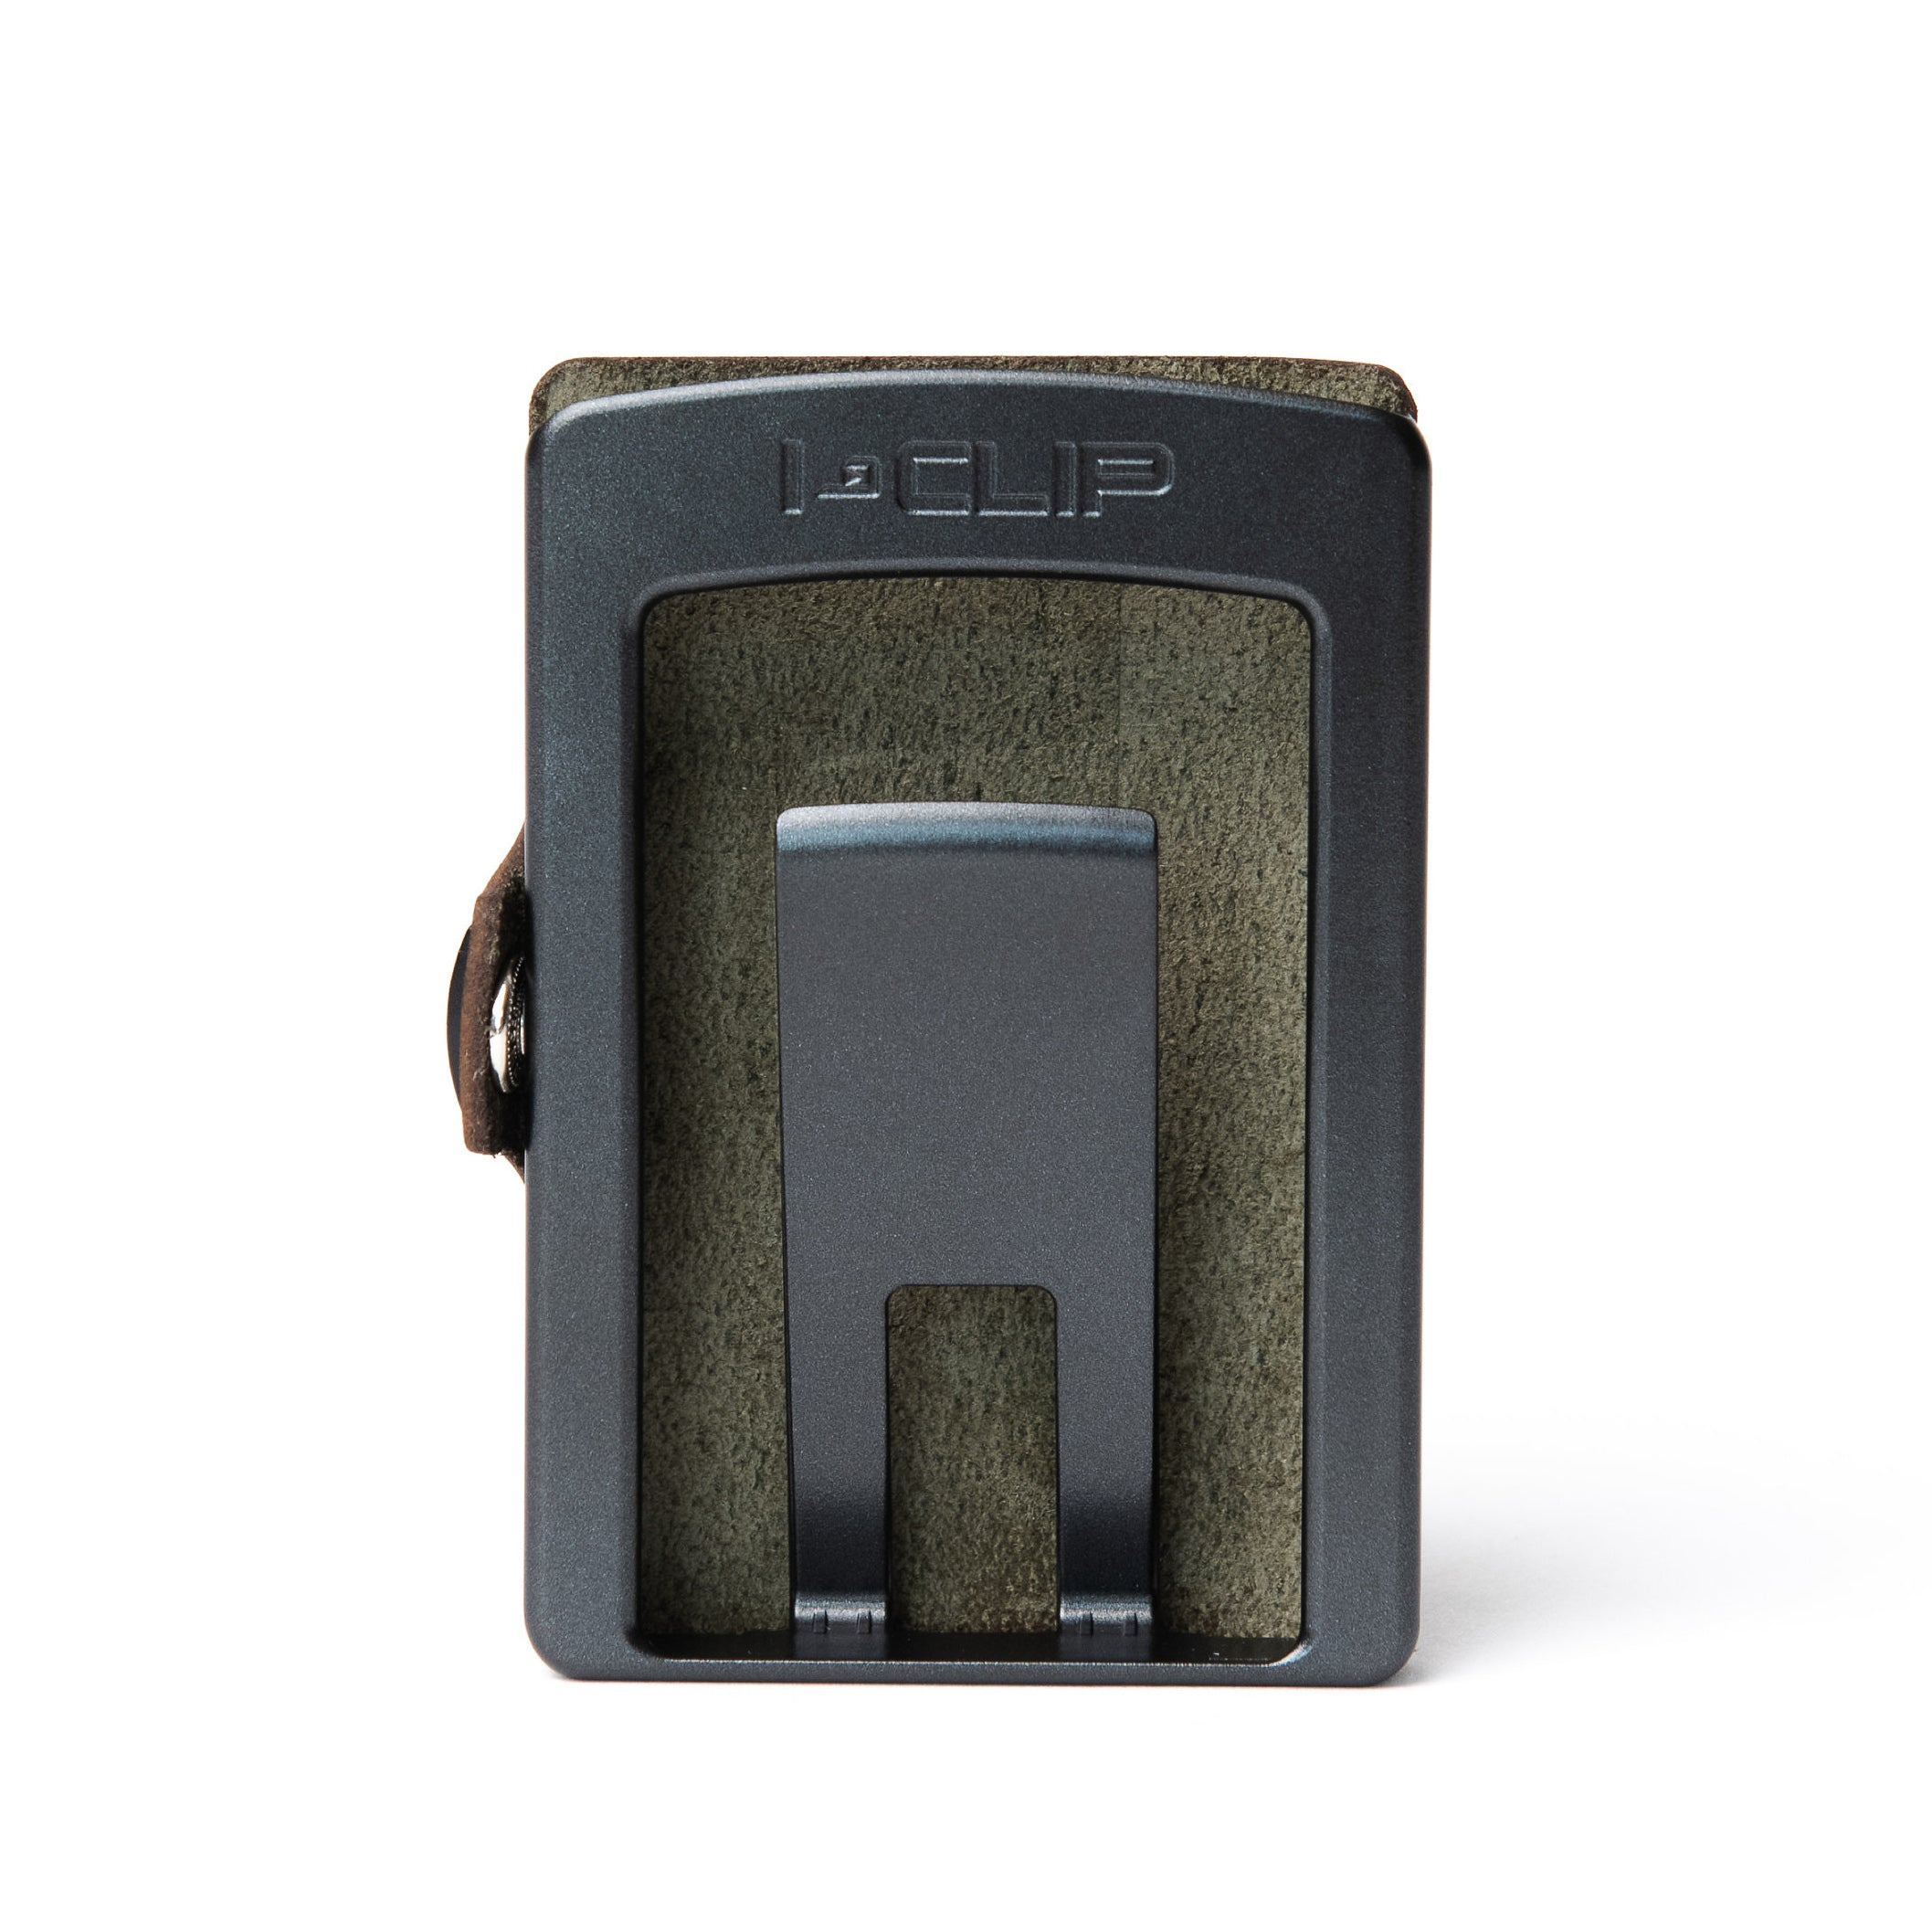 Soft Touch Leather - Olive / Gunmetal Black Frame - I-CLIP